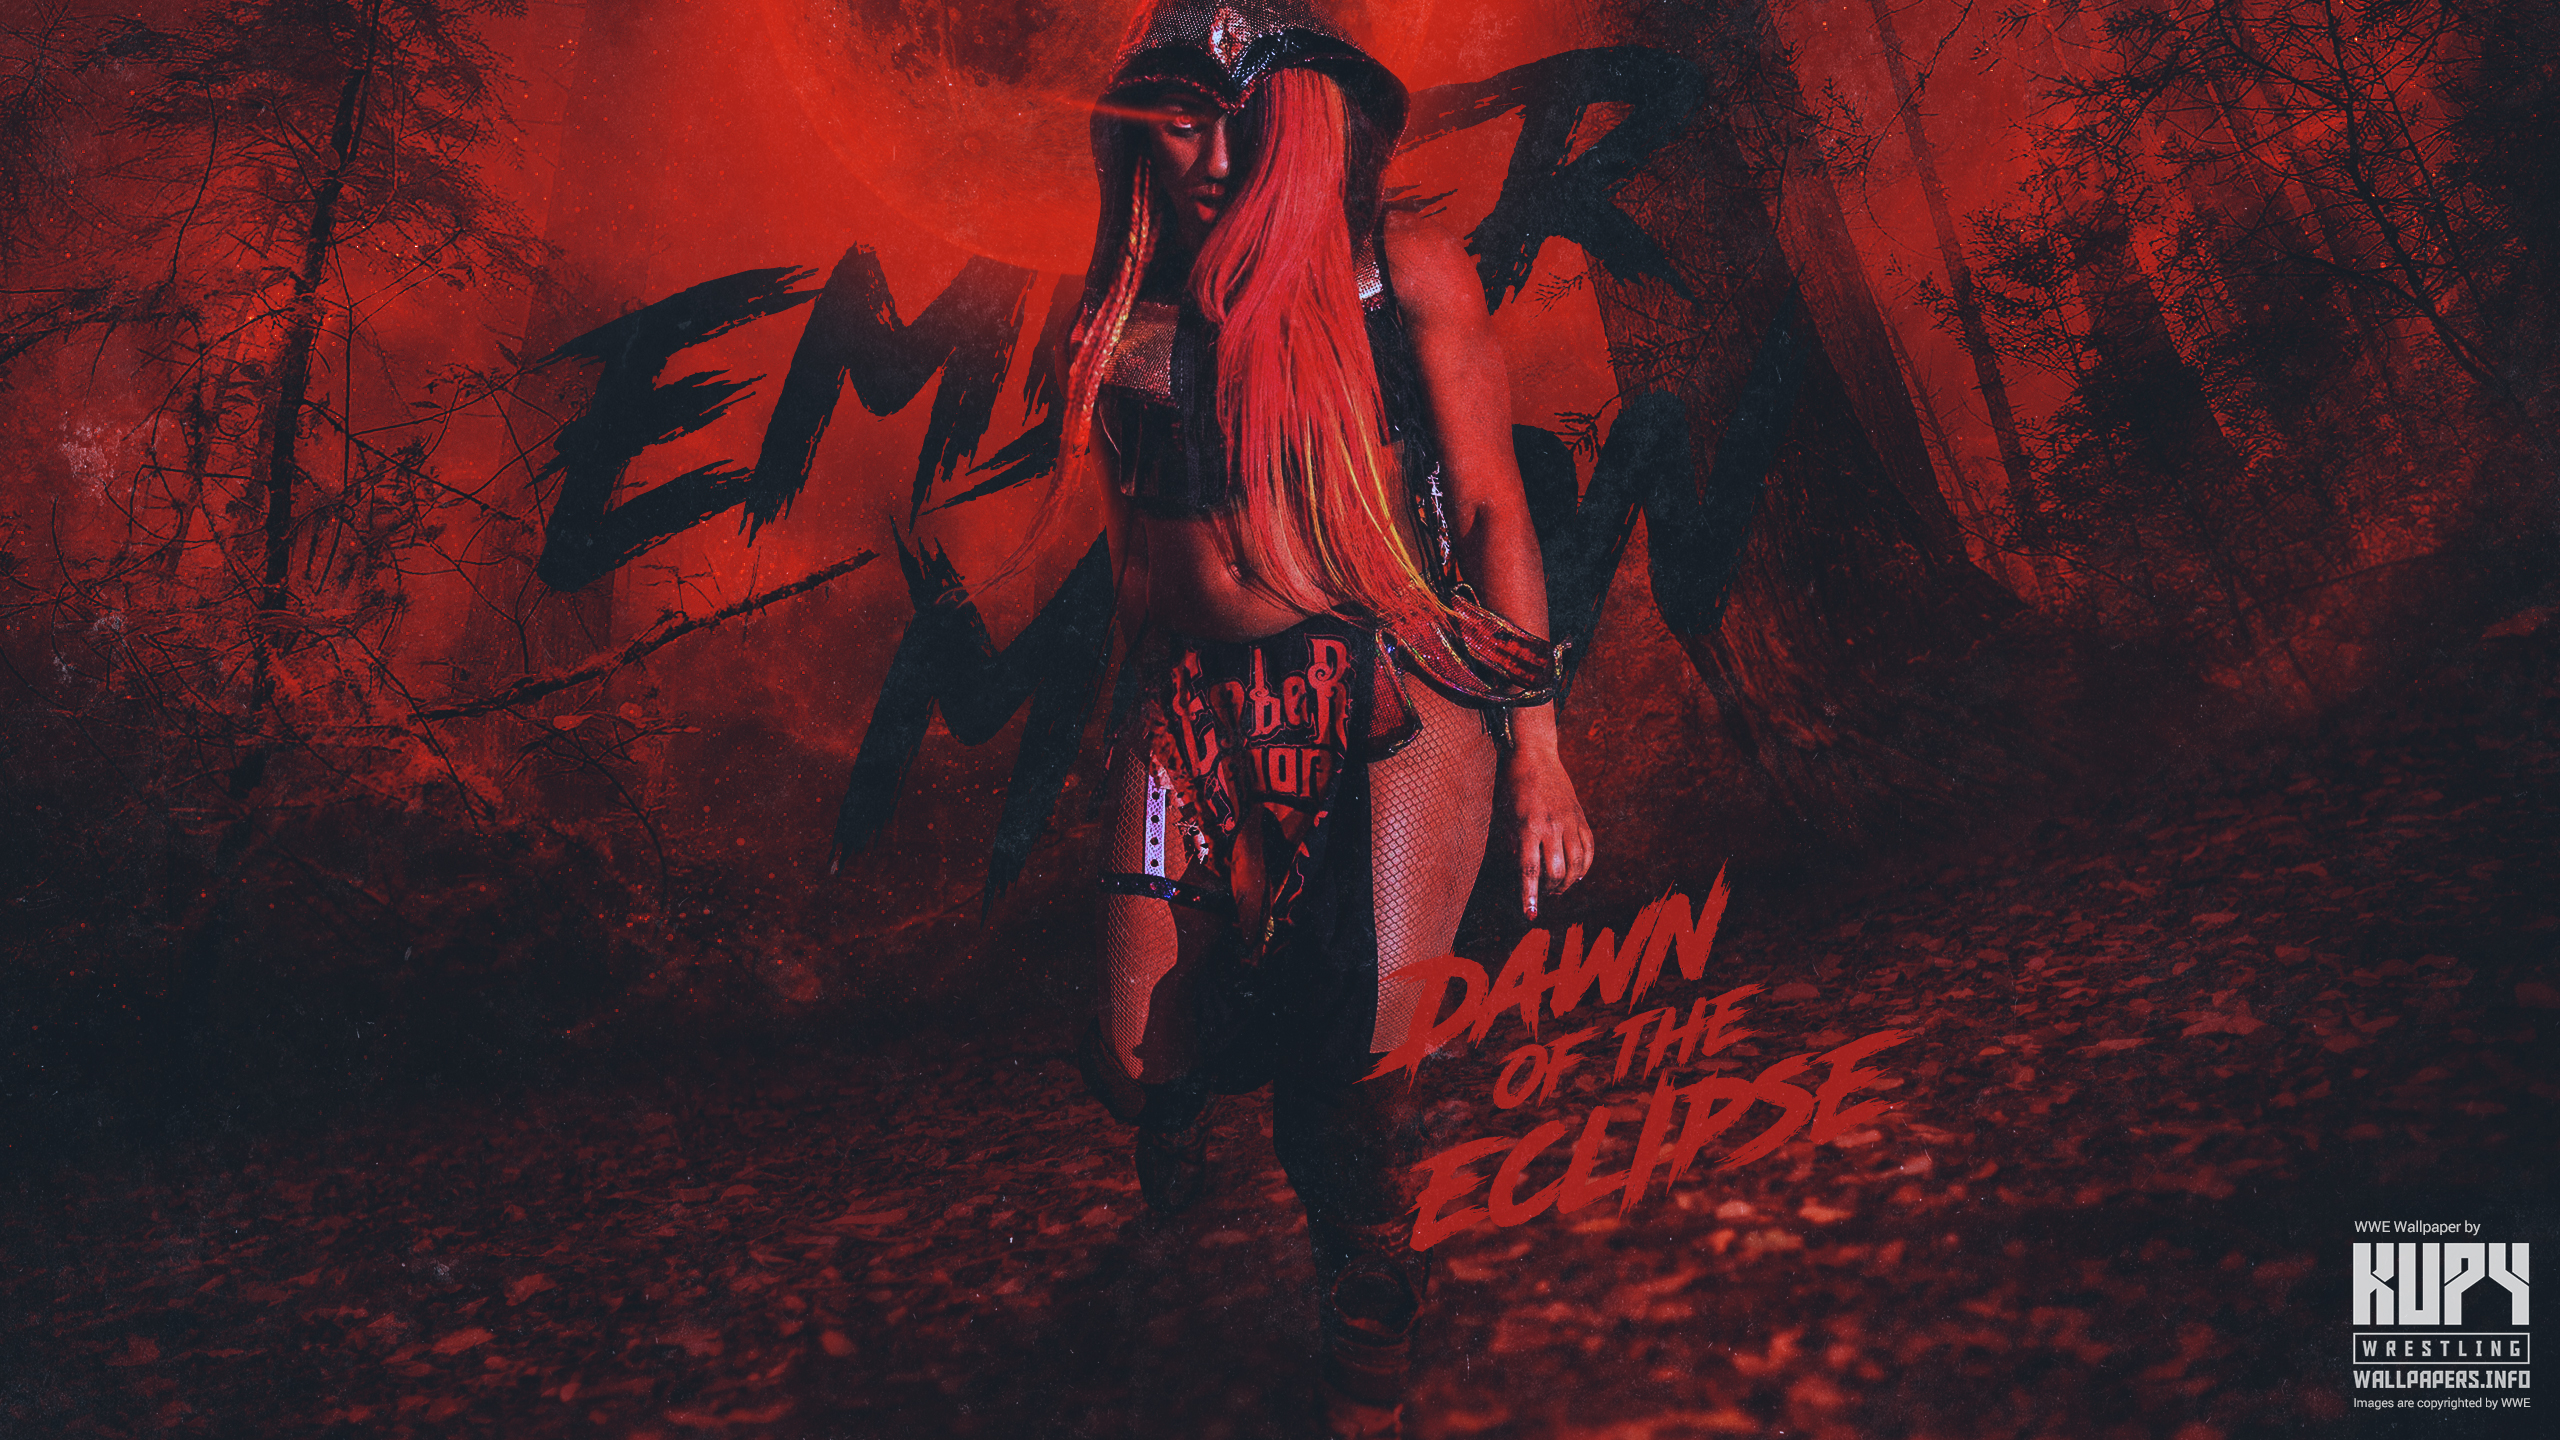 Dawn Of The Eclipse Ember Moon Wallpaper Kupy Wrestling